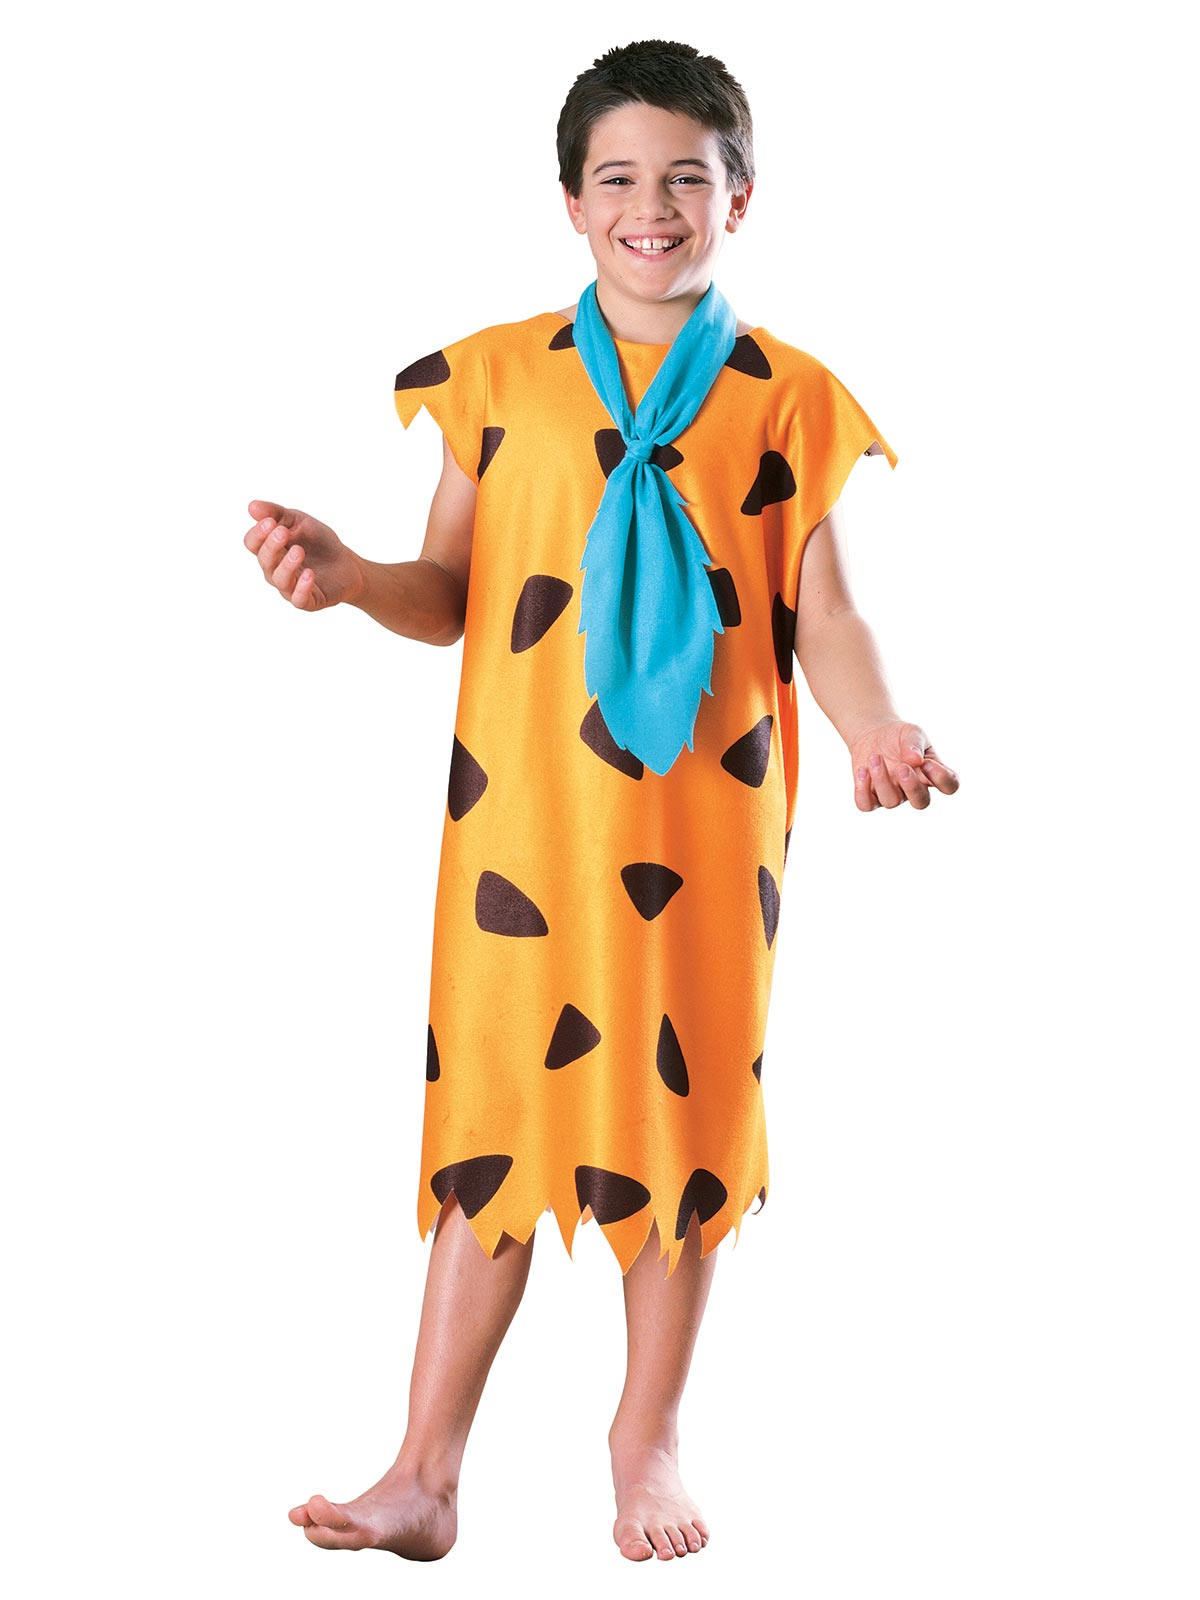 Fred Flintstone The Flintstones Child Costume - Buy Online Only